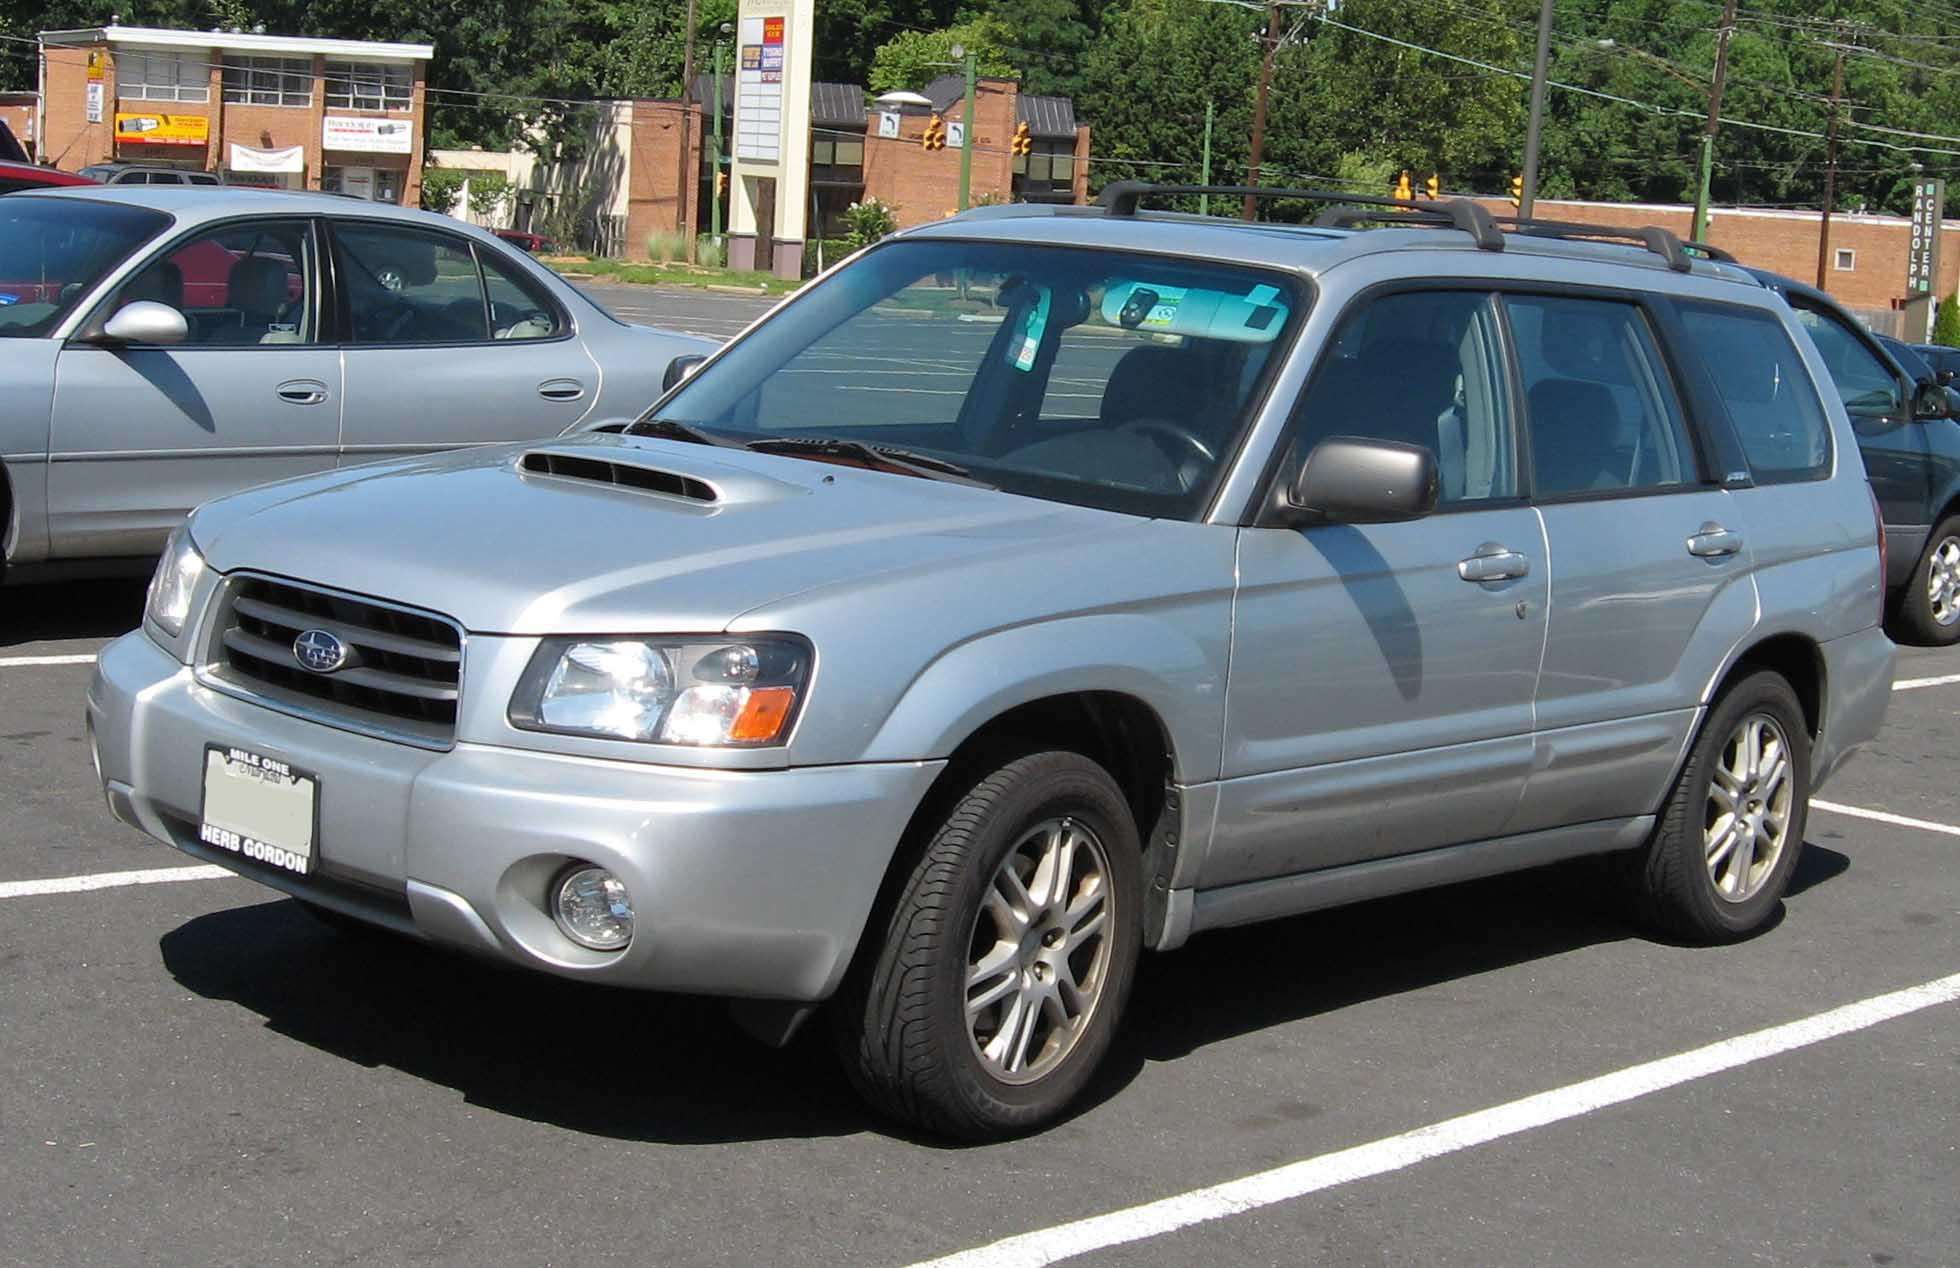 2001 Subaru Outback Custom >> baja front end conversion? - NASIOC